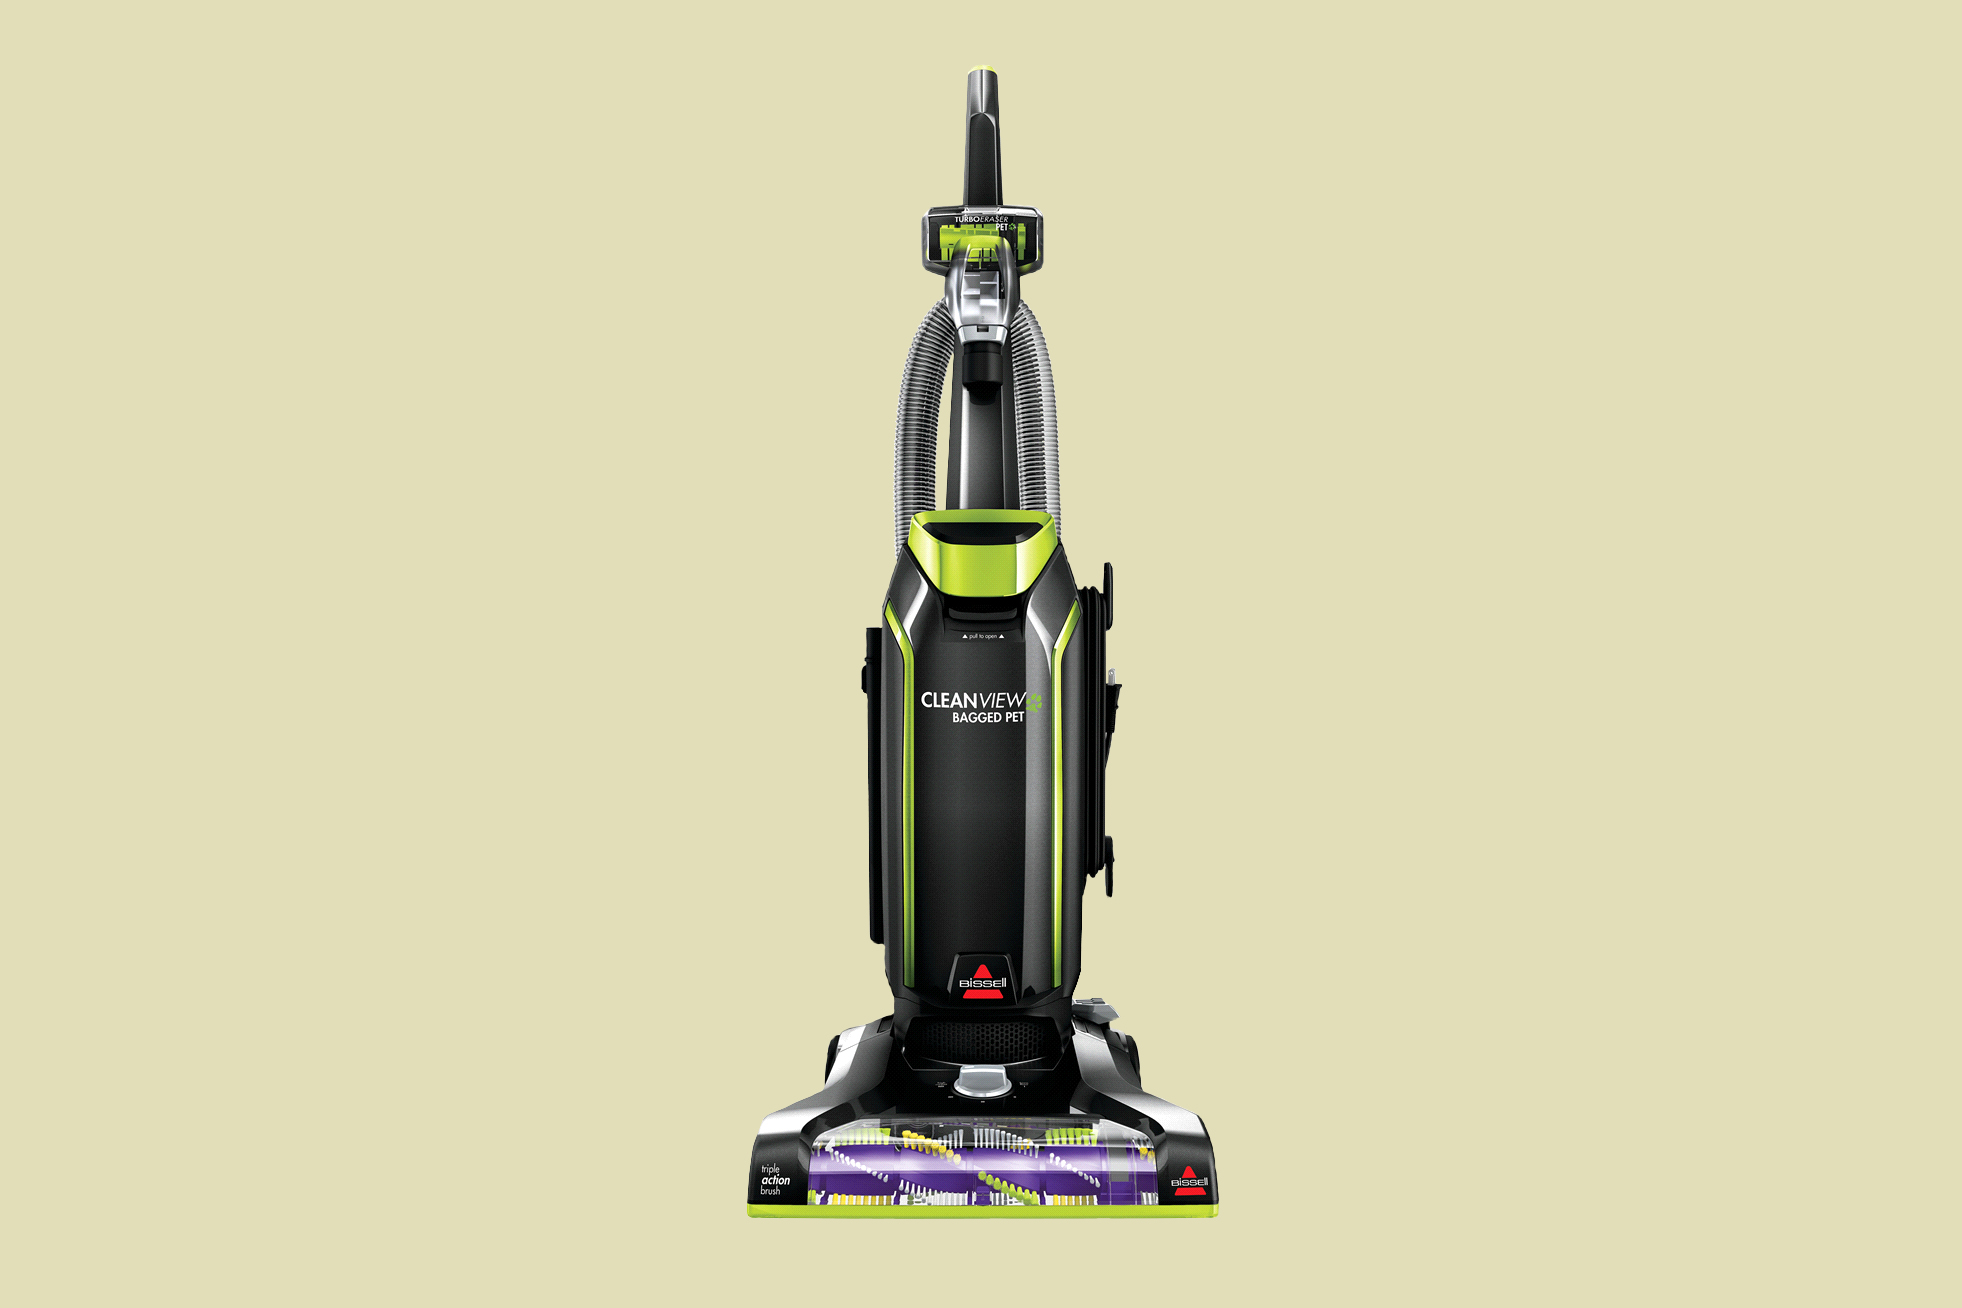 bissell cleanview bagged pet upright vacuum cleaner